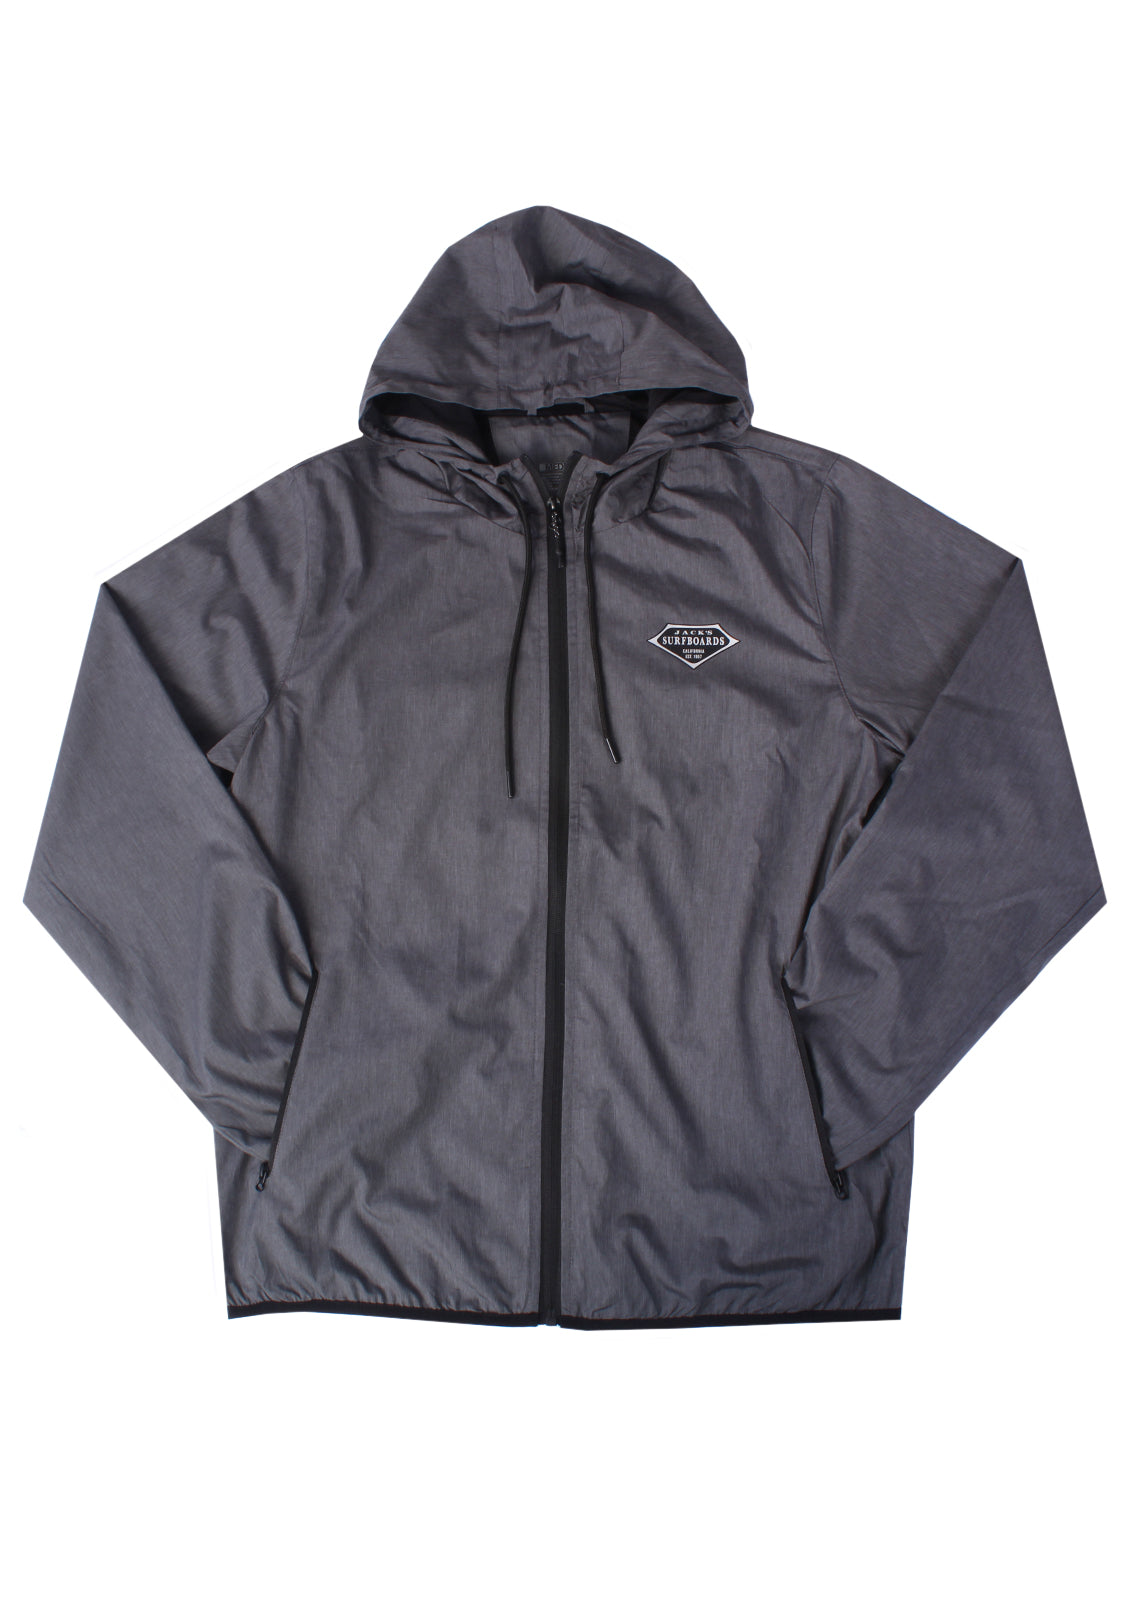 Jacks Surfboards Captain Jacket